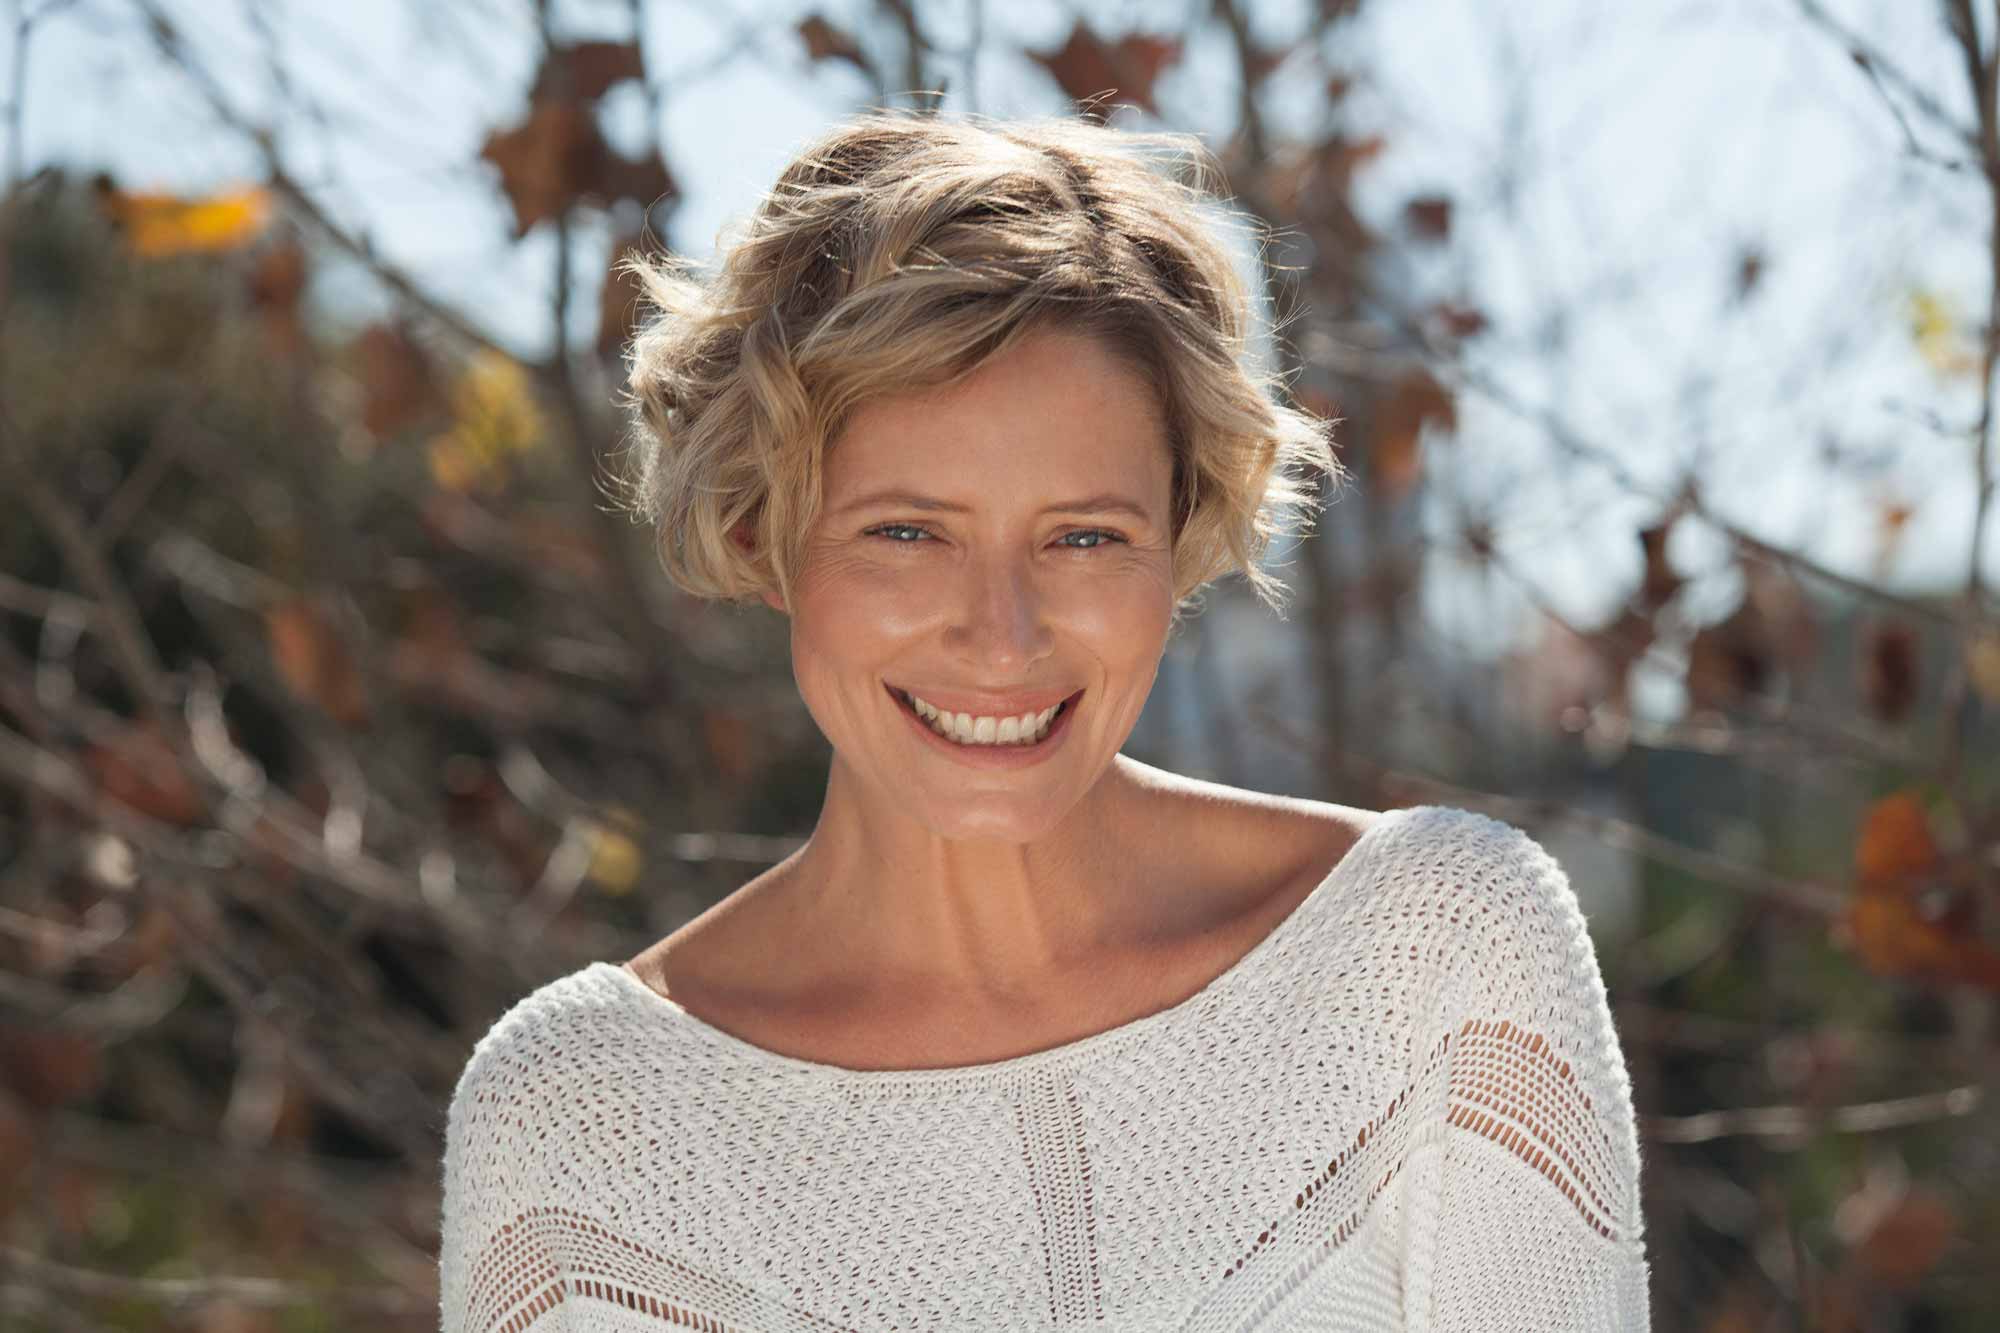 5 Cool Shoulder Length And Short Haircuts For Women Over 40 Inside Short Haircuts For Women In Their 40S (View 24 of 25)